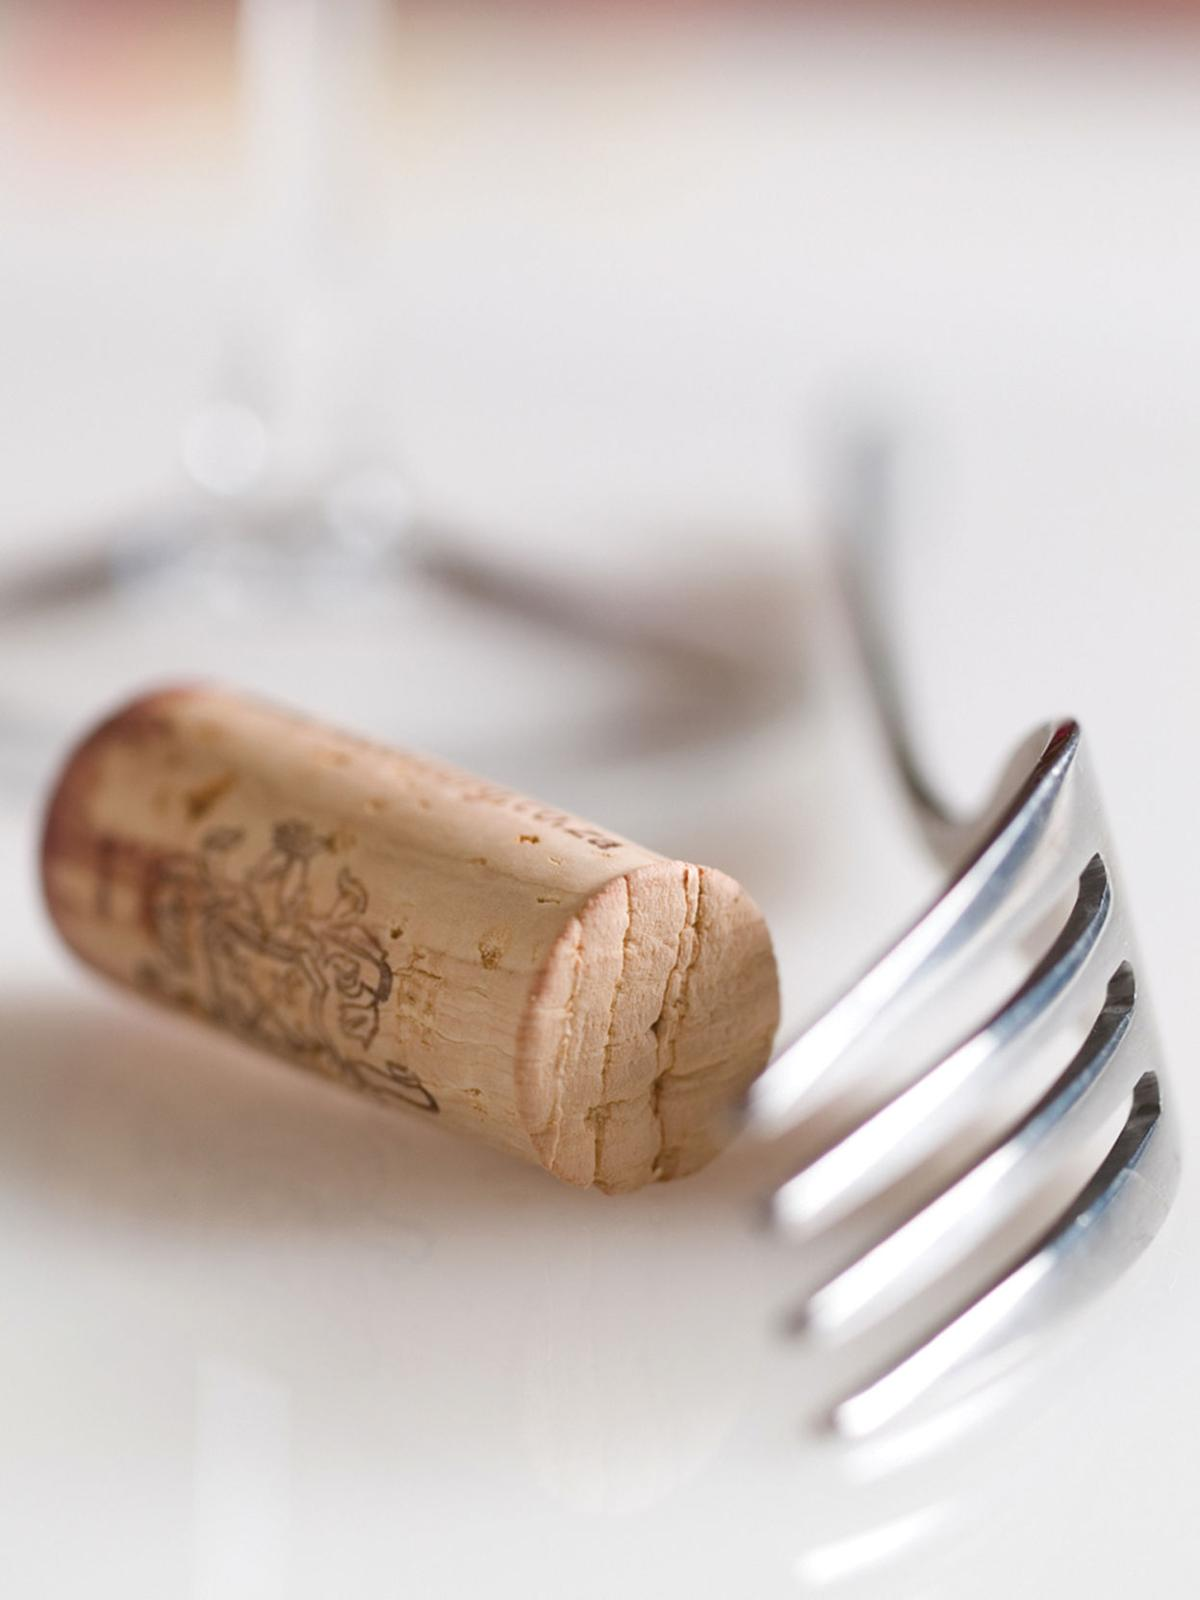 The Cork and Fork